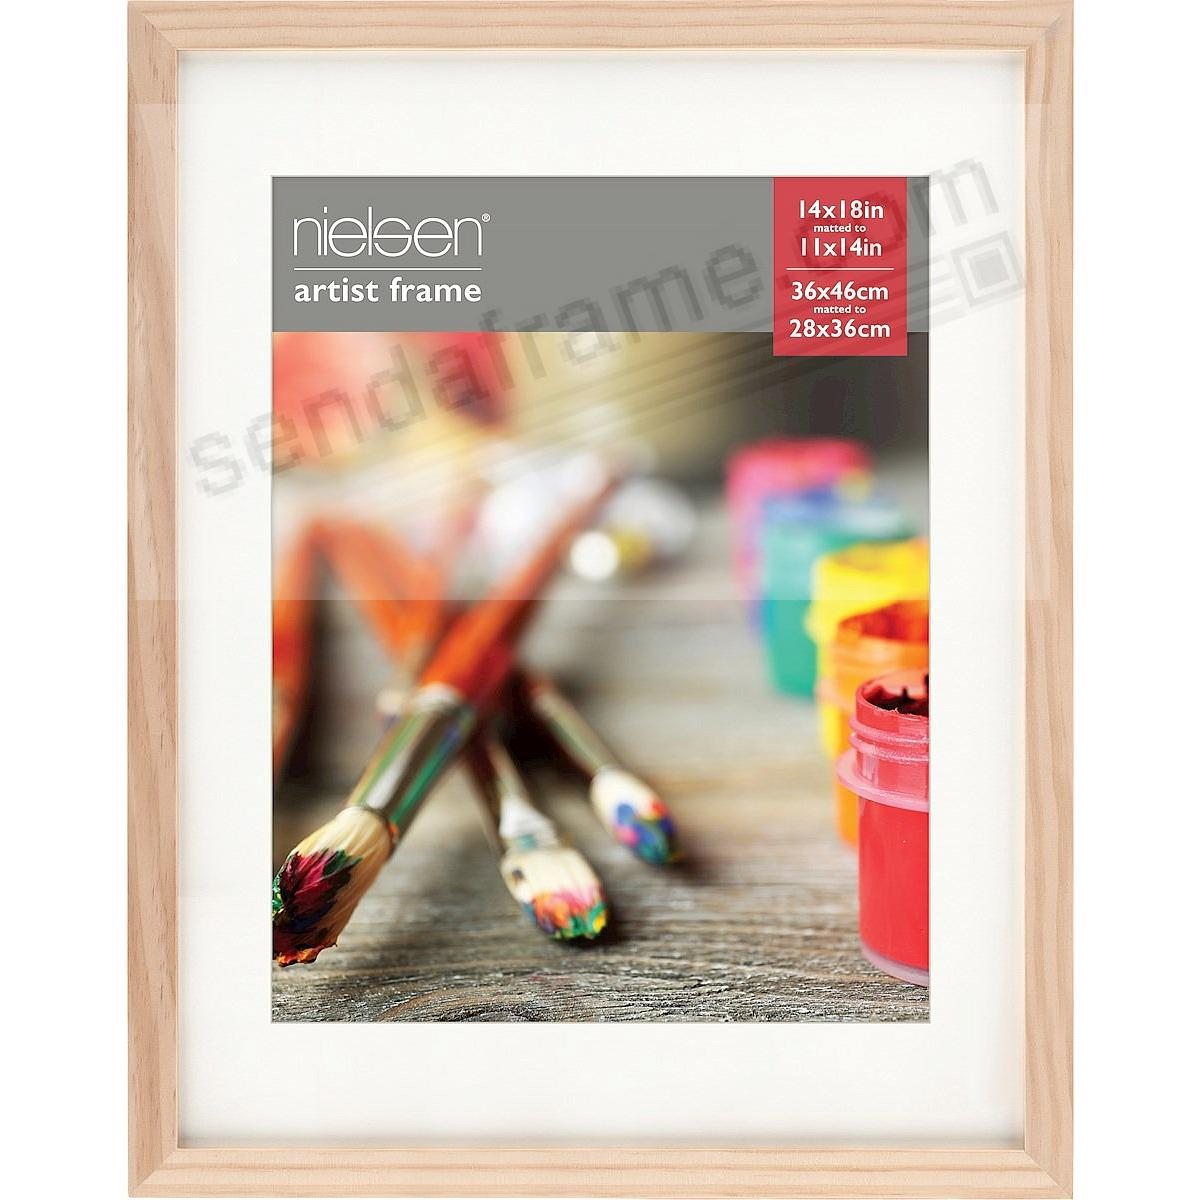 Ash Natural GALLERY-CANVAS DEPTH matted wood frame 14x18/11x14 by Nielsen-Bainbridge®